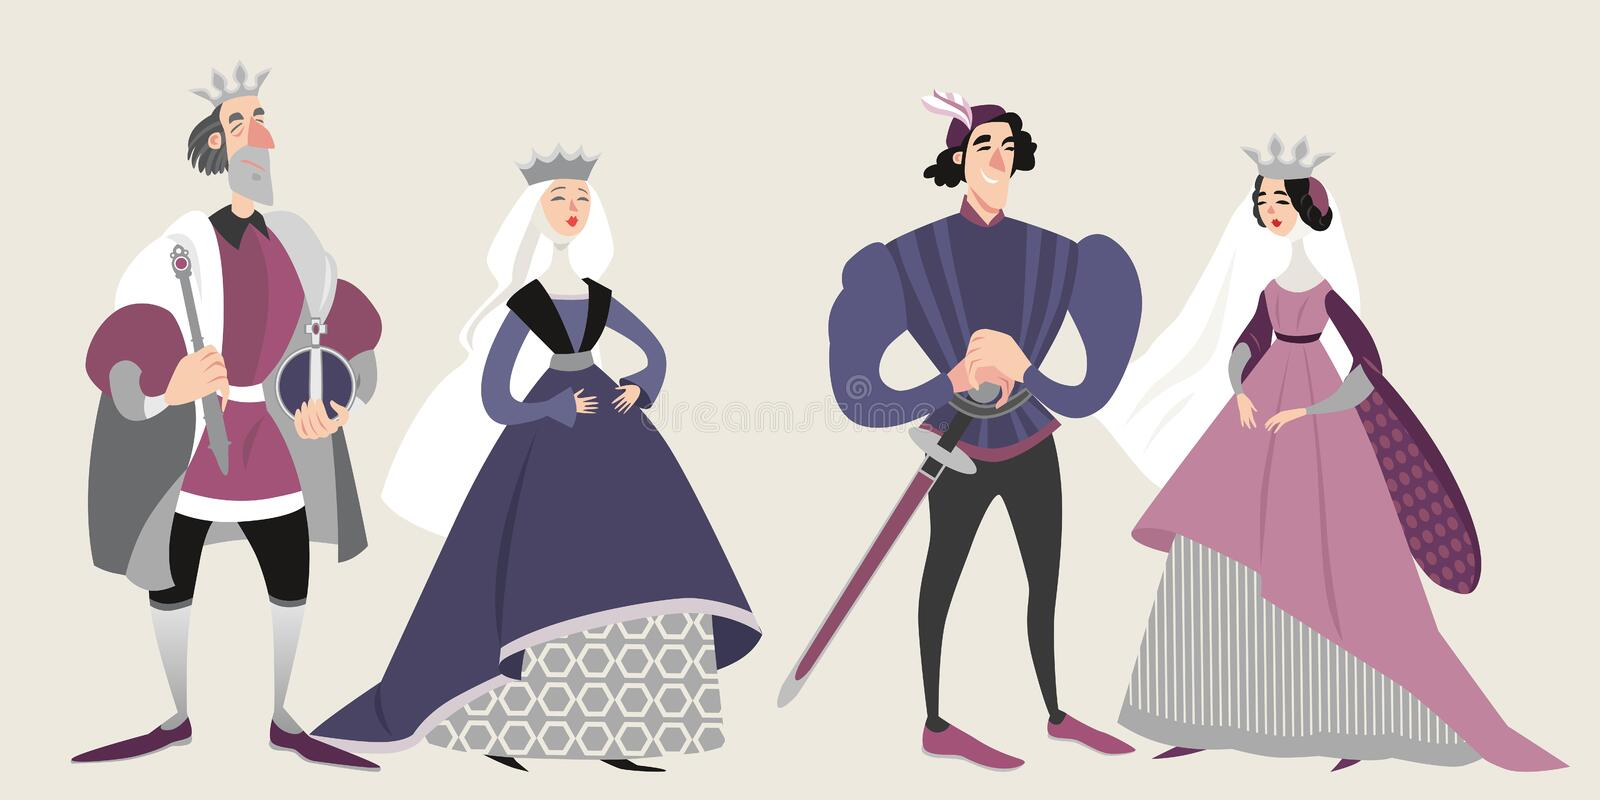 The royal family. Middle ages. Funny cartoon characters in historical costumes royalty free illustration